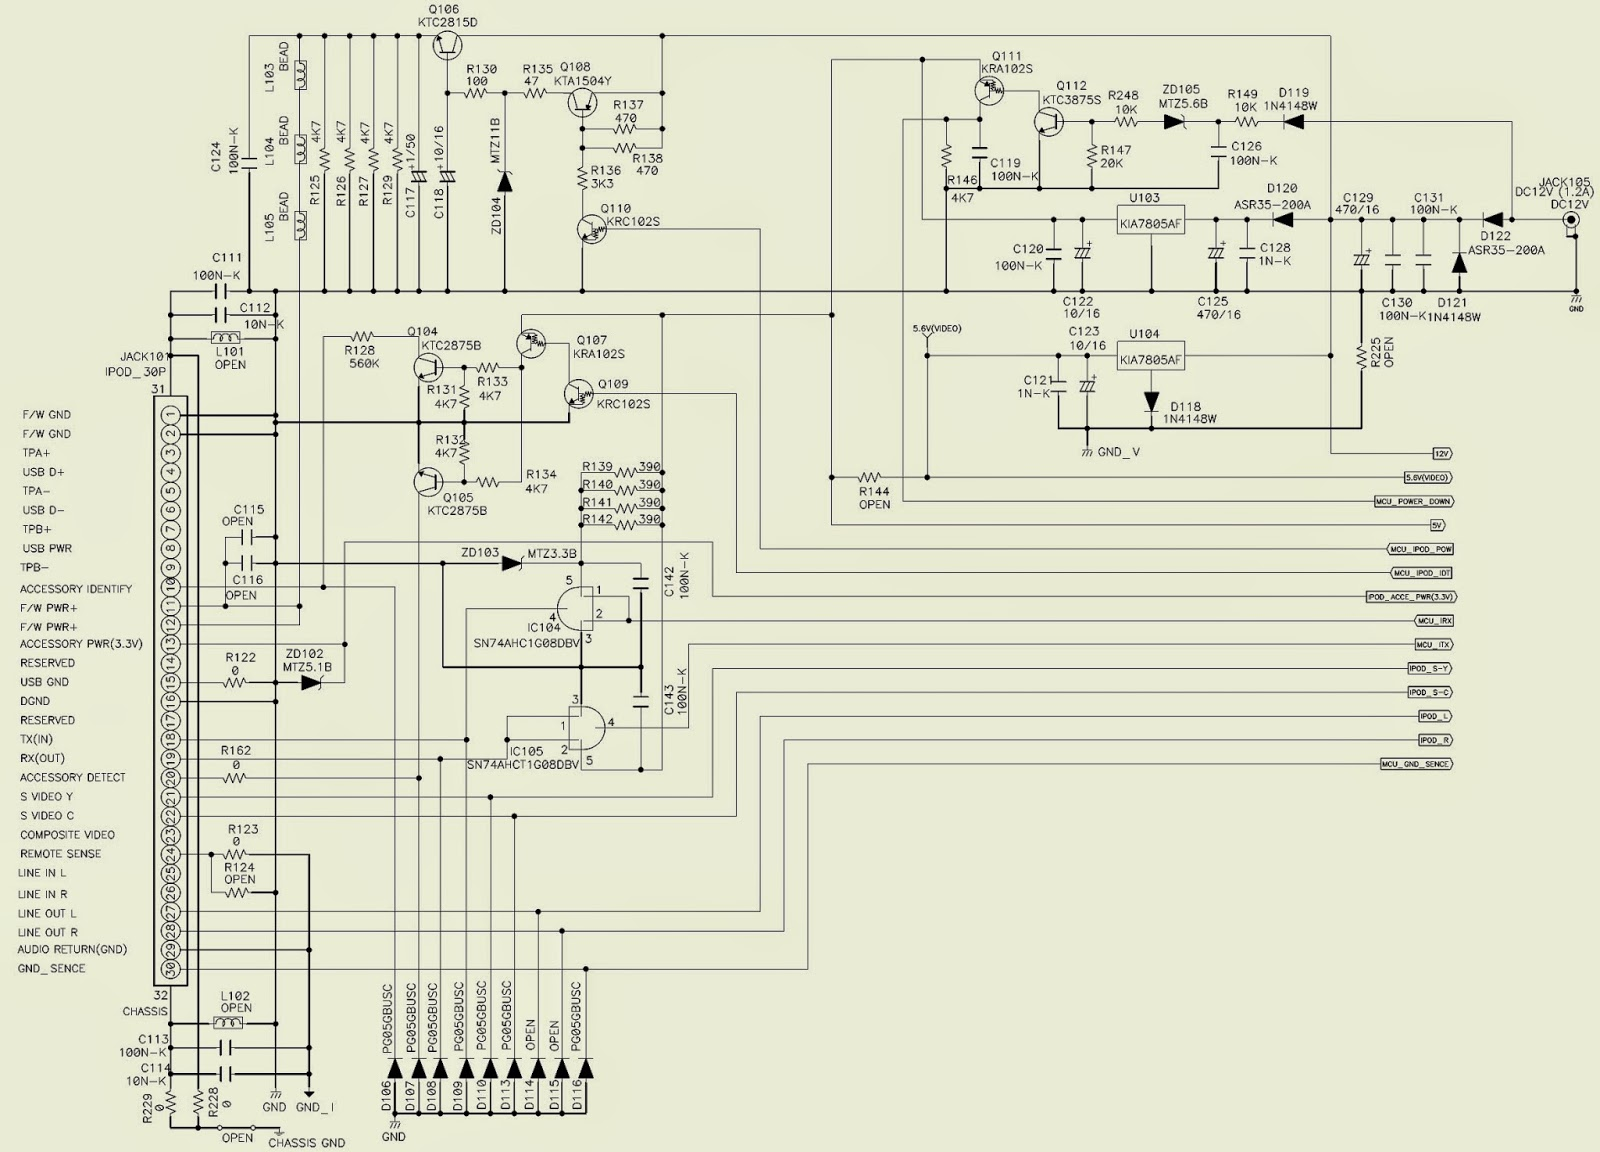 Denon Asd 1r Control Dock For Ipod Schematic Circuit Diagram Ethernet Cable Wiring Schematics Click On The Pictures To Magnify